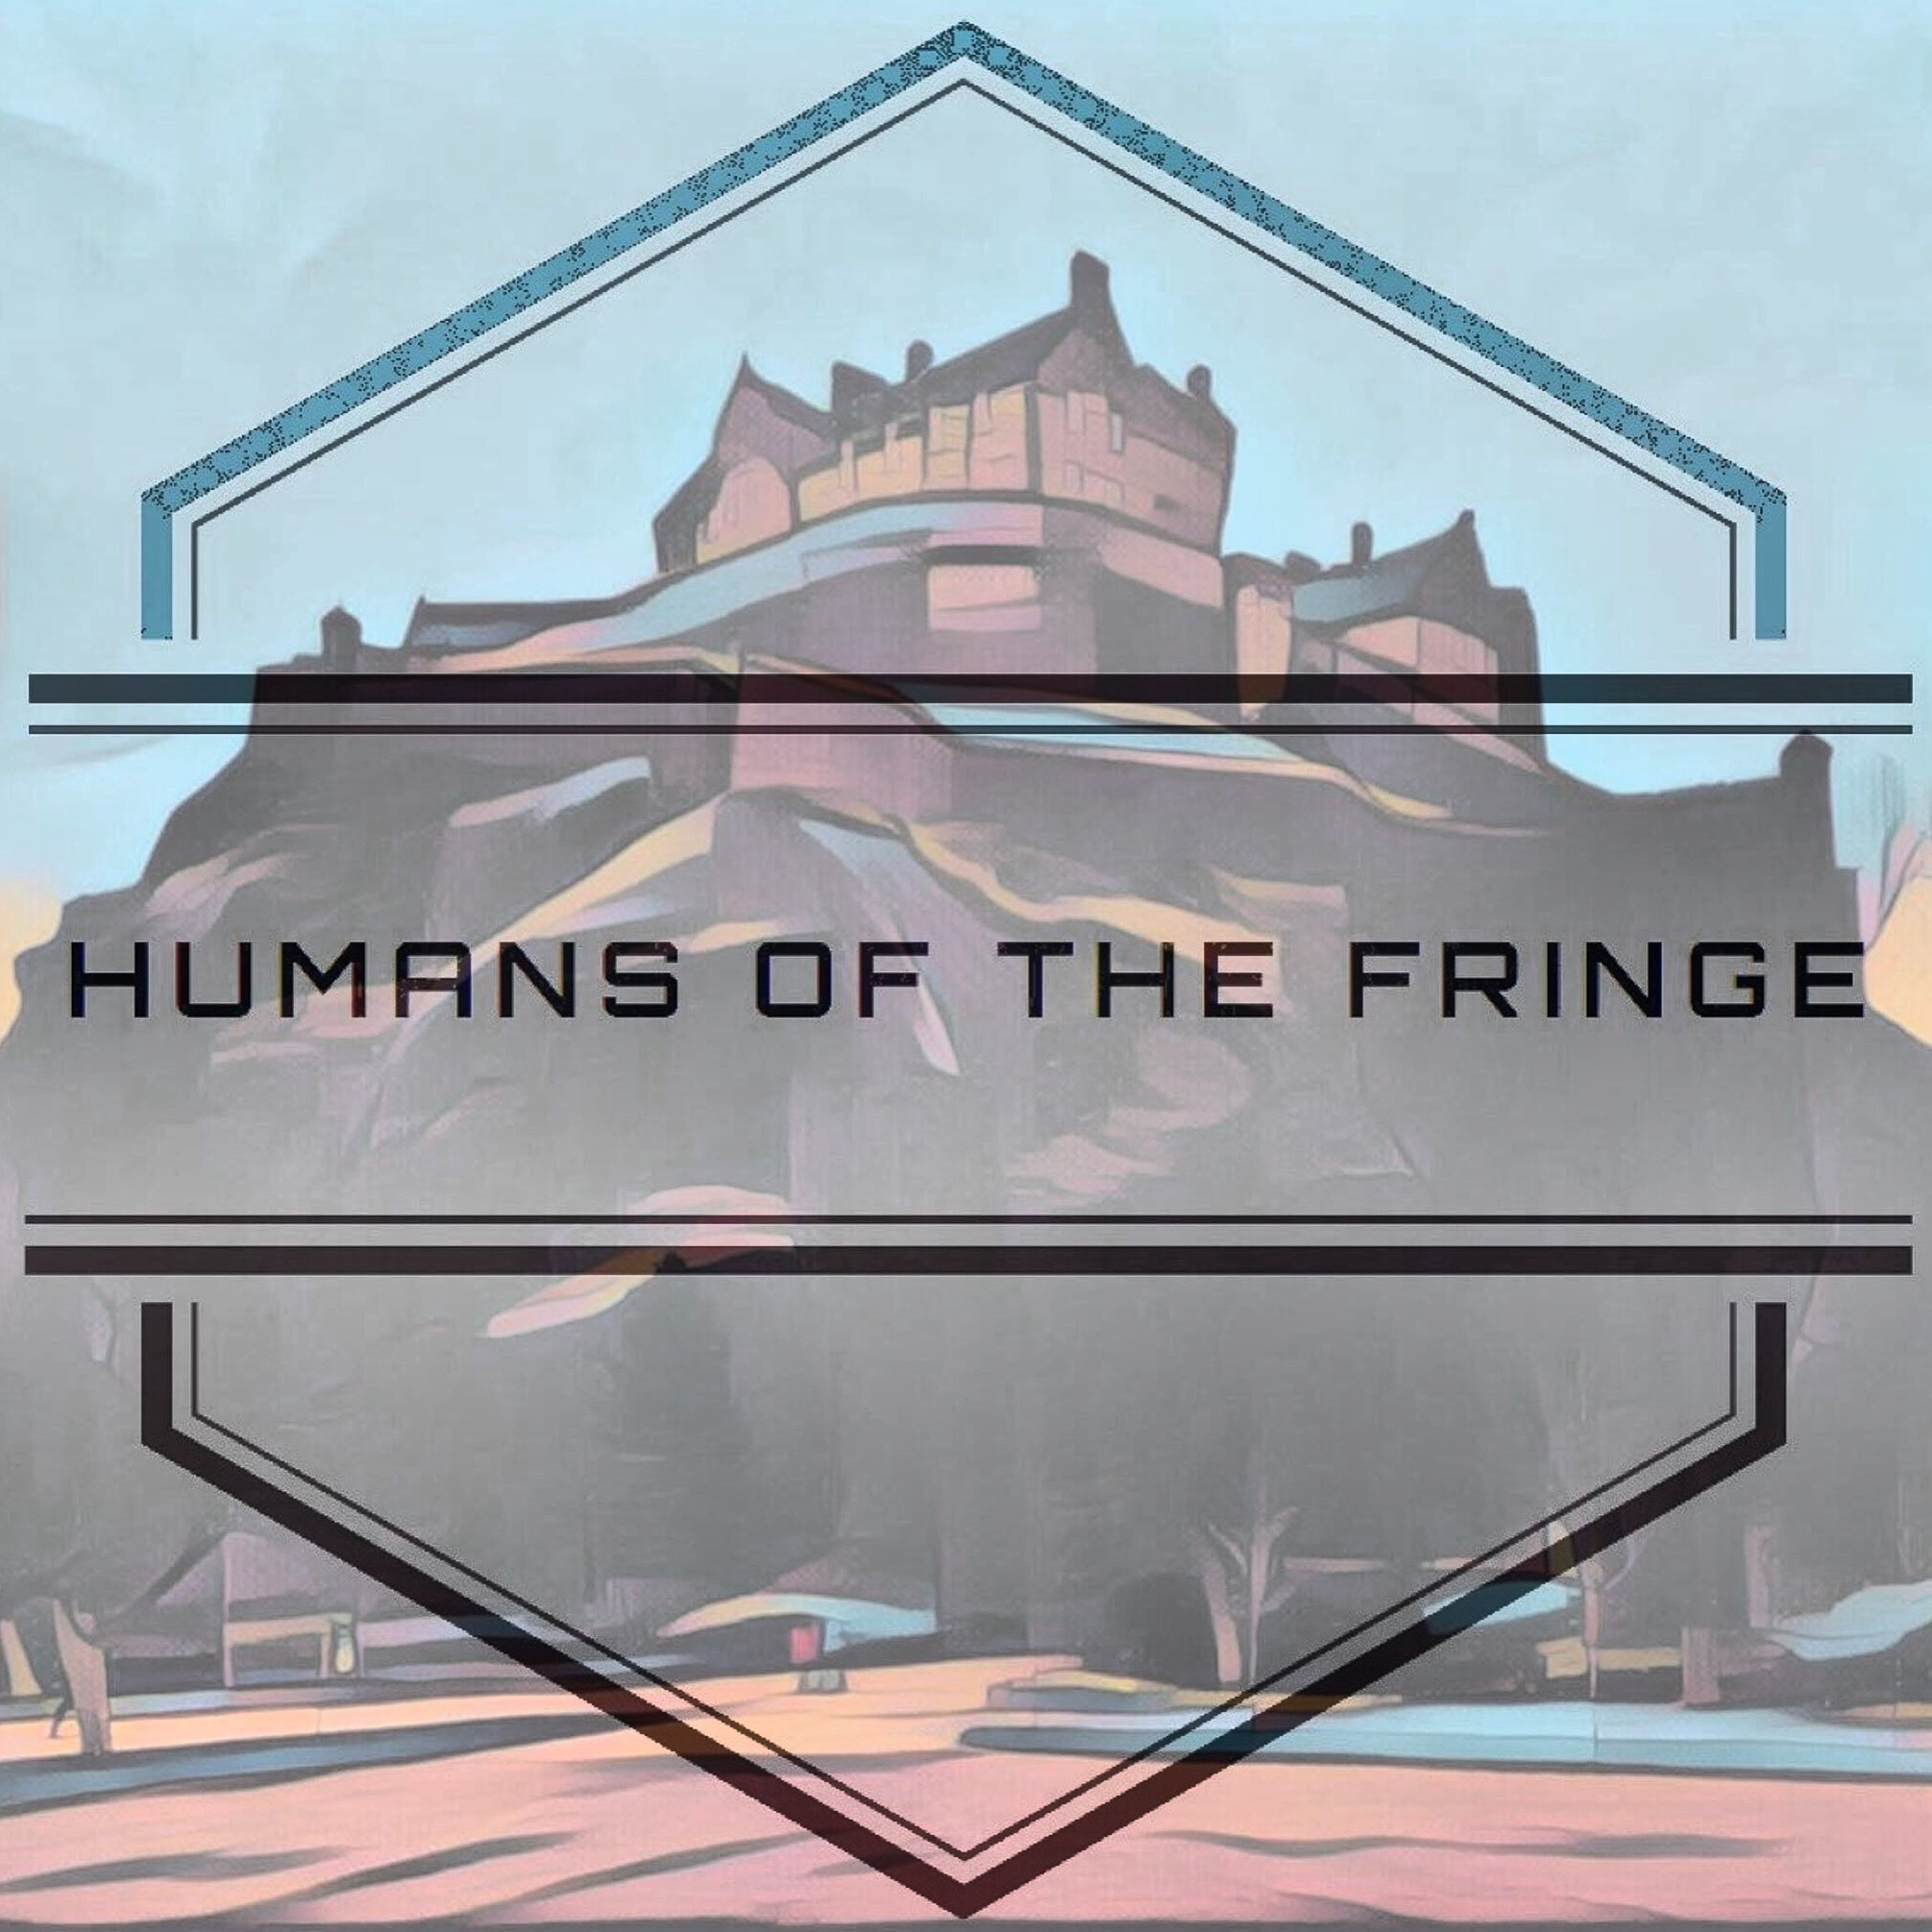 Humans of the Fringe